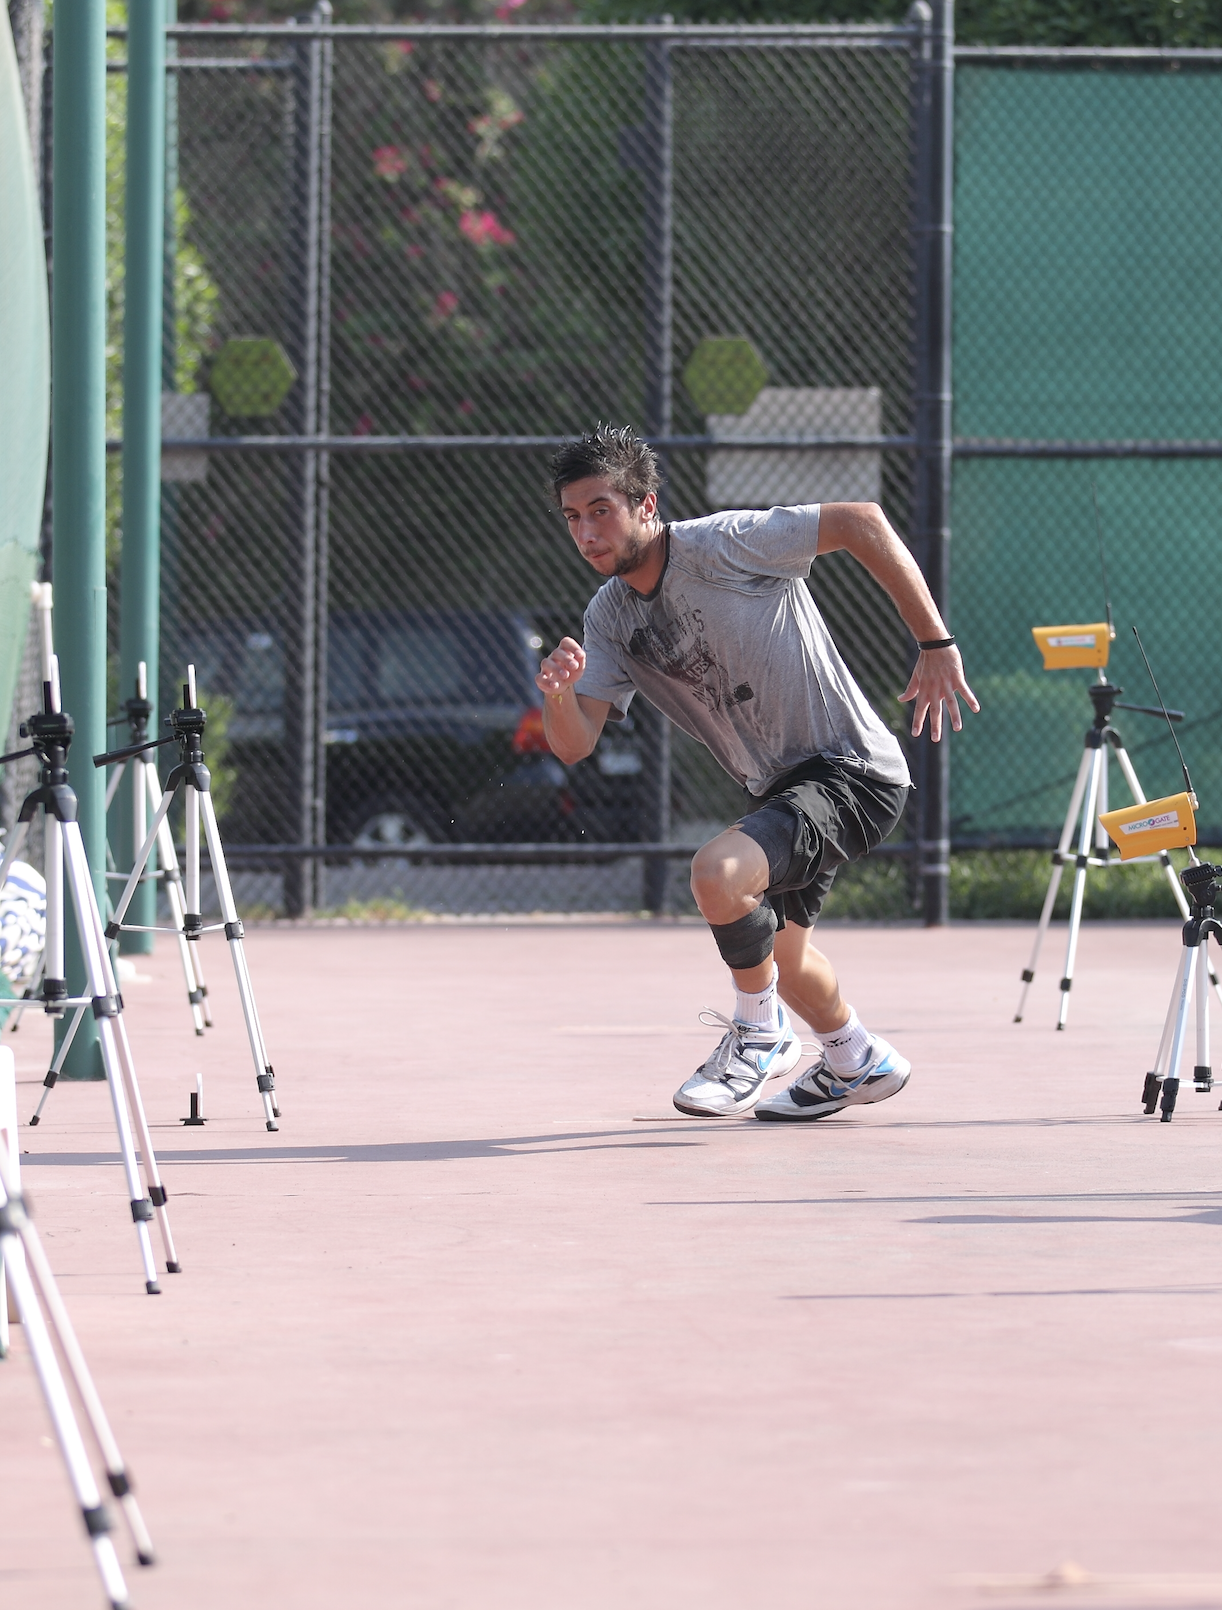 On-court physical testing in tennis -